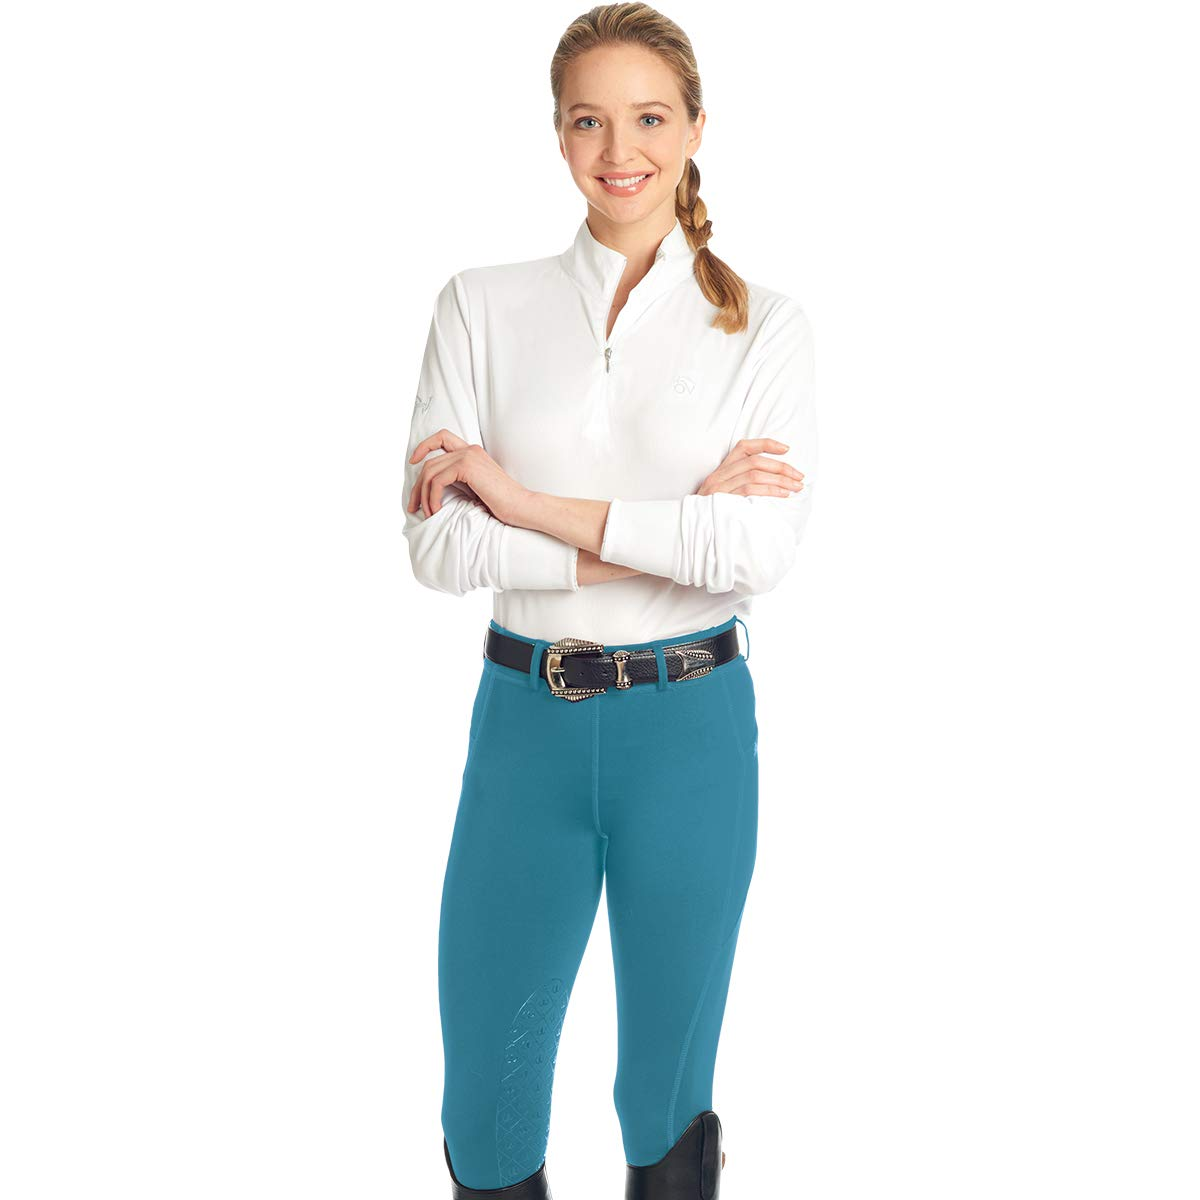 Ovation Ladies aerowick Kneepatch Breech B07B51KGMH Large|ピーコック(Peacock) ピーコック(Peacock) Large